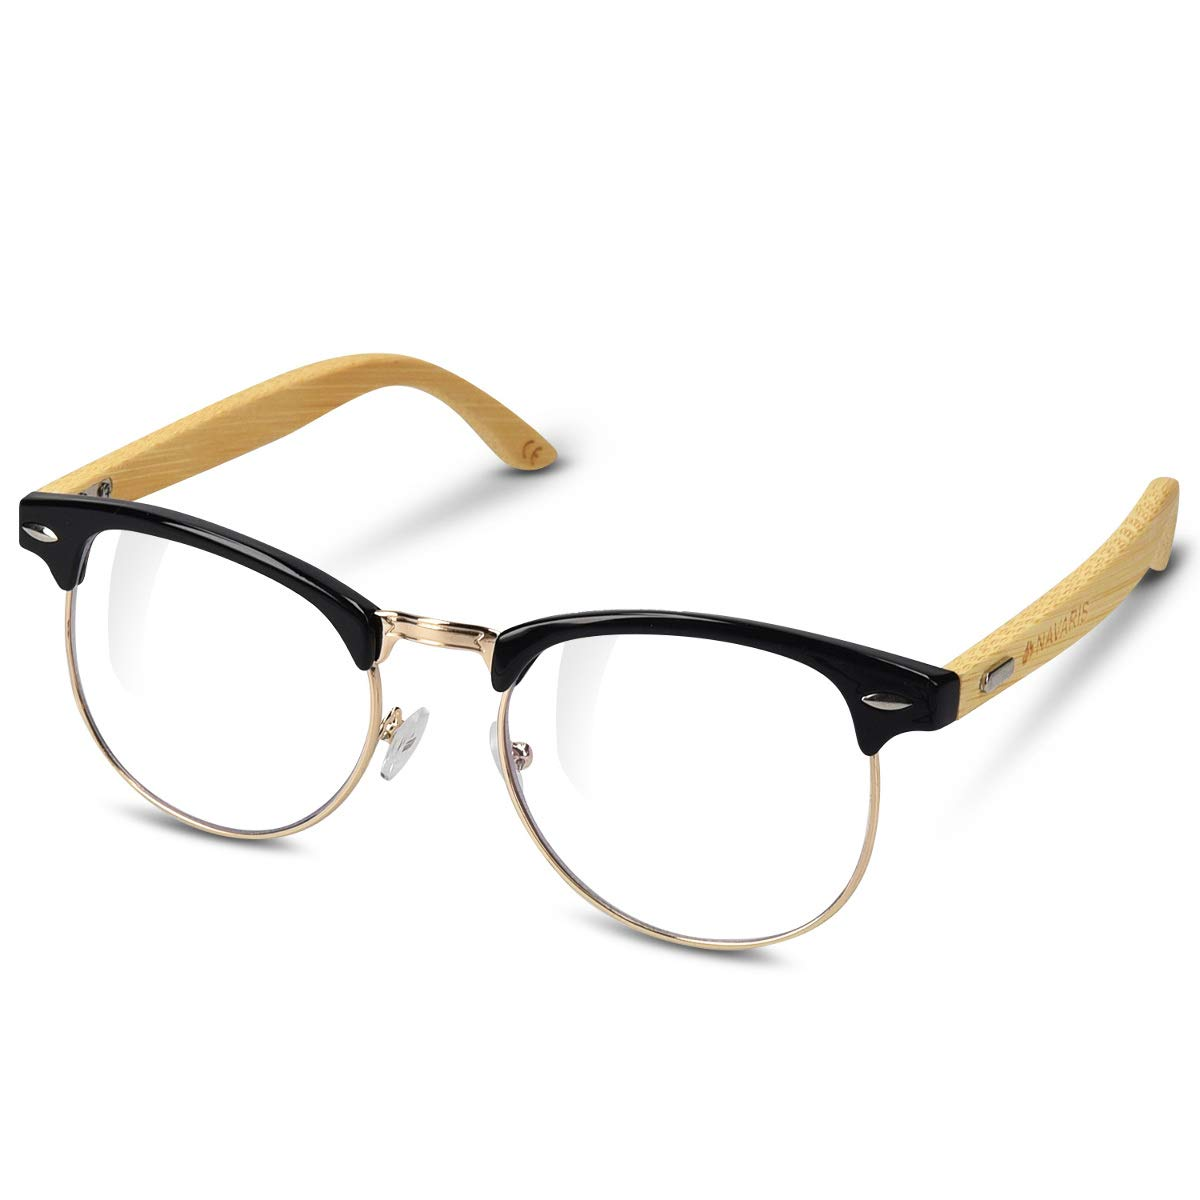 d7e8ef5acb Navaris Vintage Non Prescription Glasses - Vintage Optical Eyewear with  Clear Lenses for Men and Women - Unisex Glasses with Wooden Bamboo Frames   ...